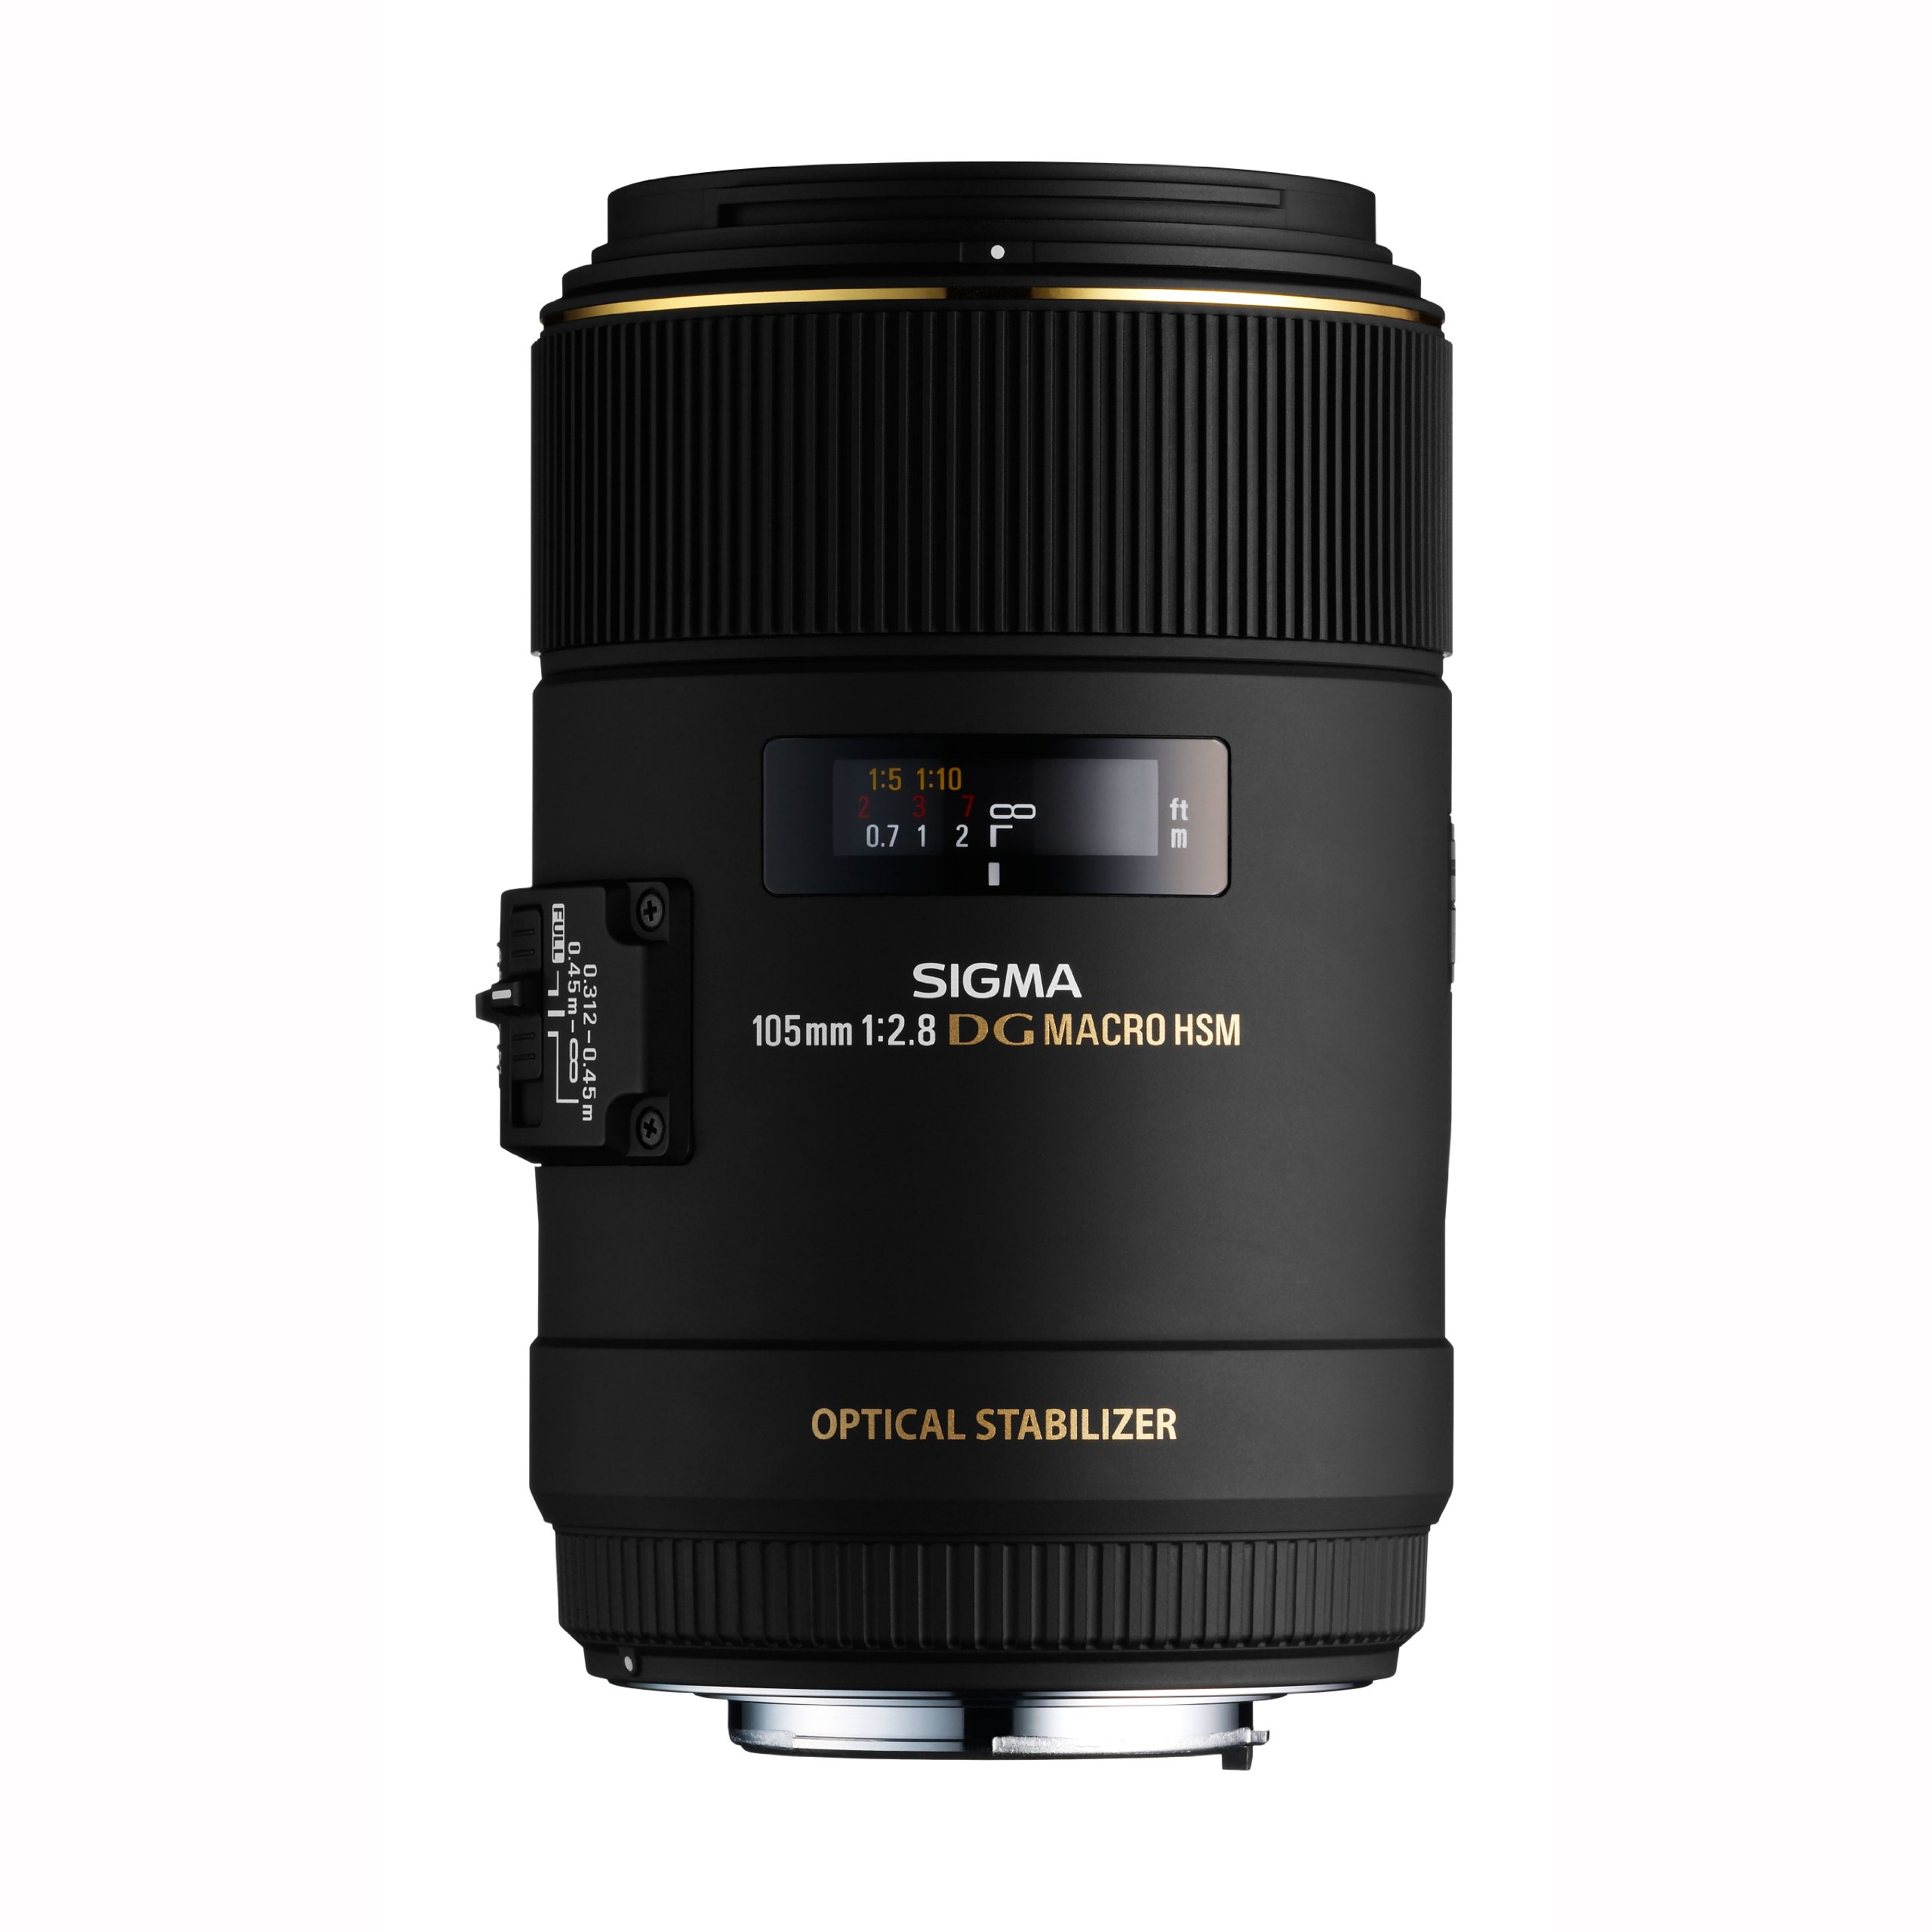 Sigma 105mm F2.8 EX DG OS HSM Macro Lens for Canon SLR Camera by Sigma